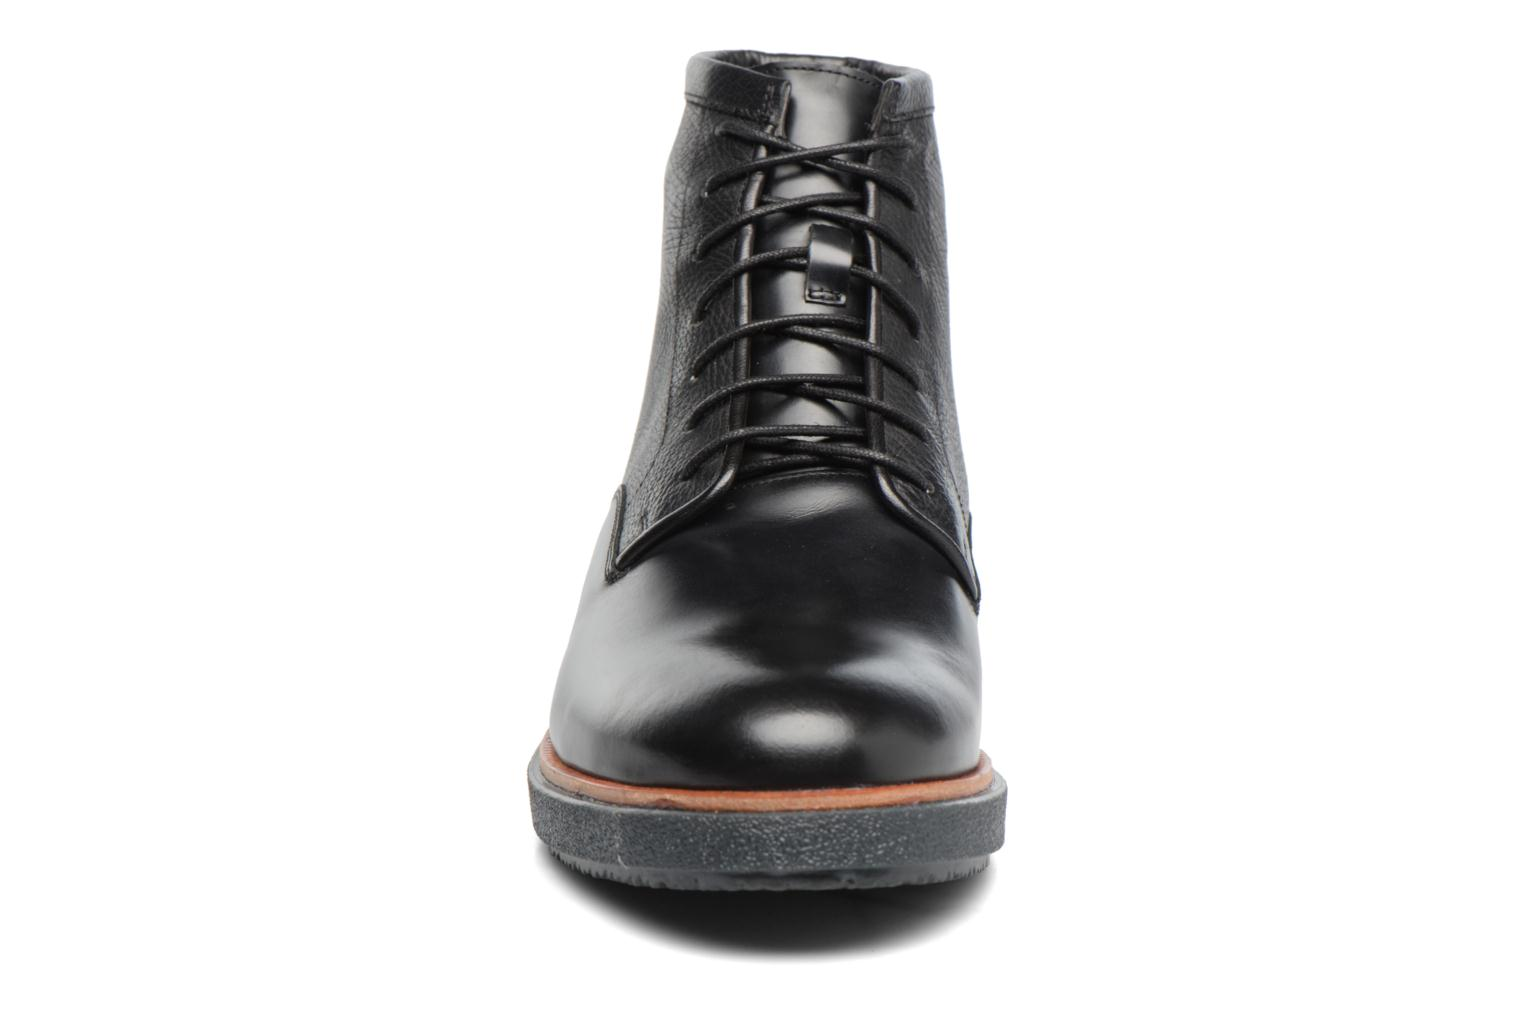 Modur Hi Black leather